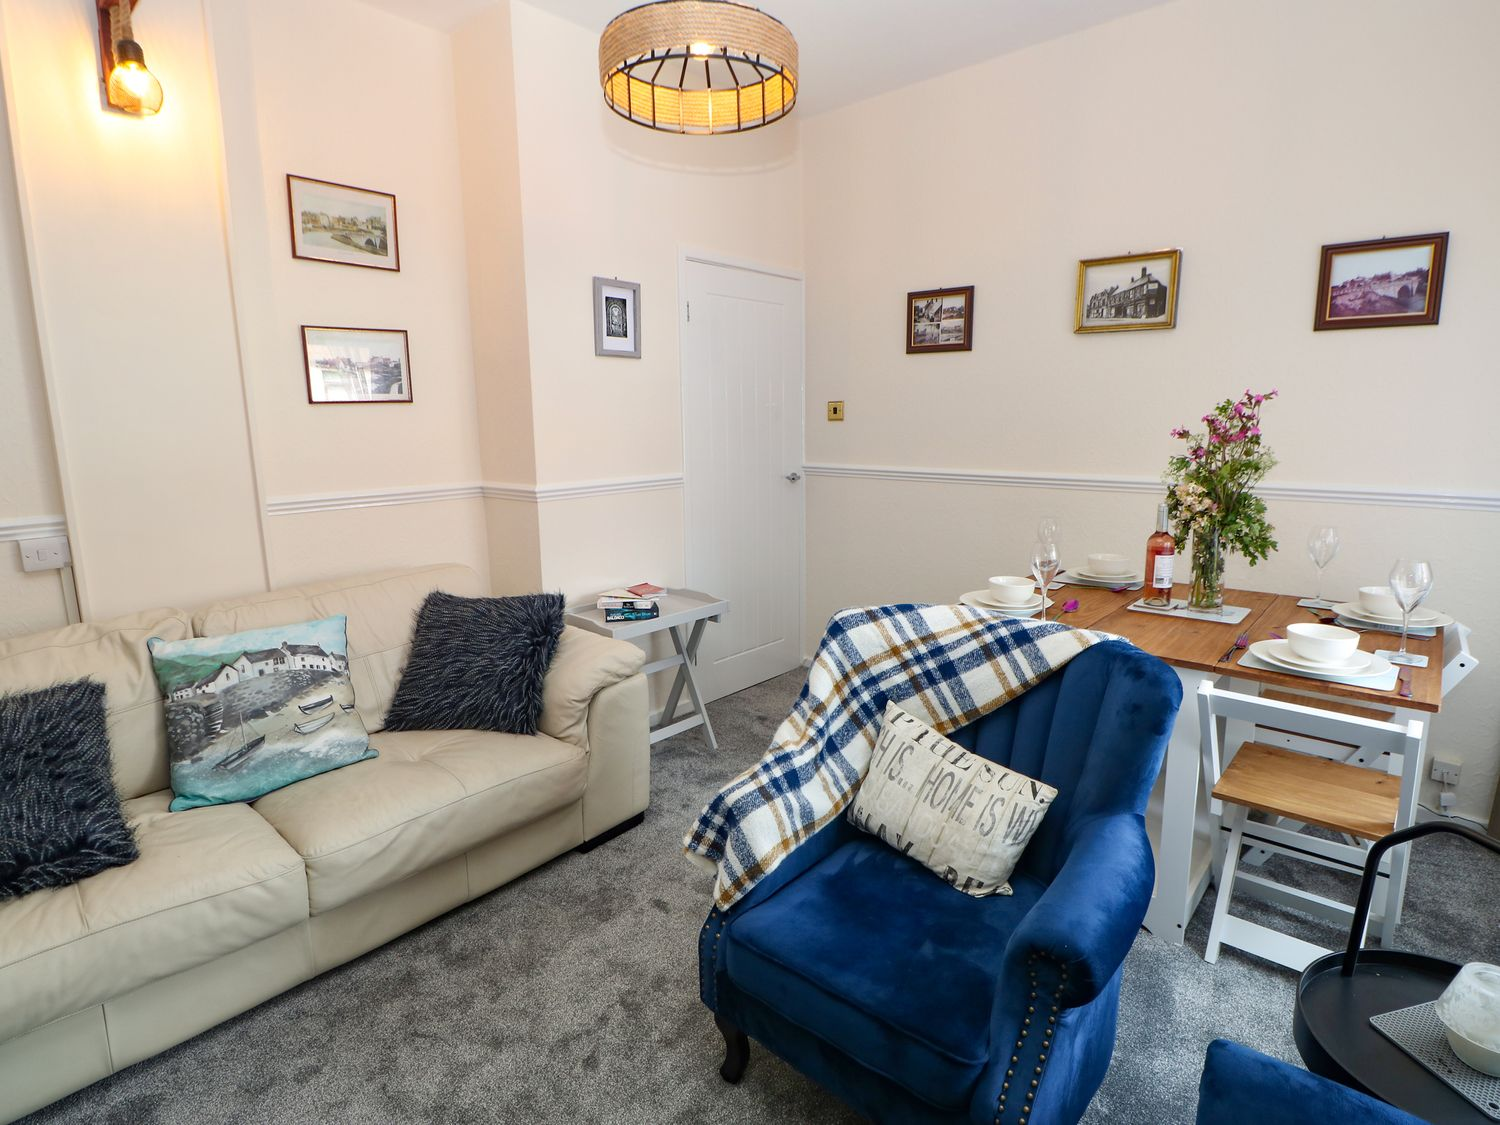 Cicely's Place in Newcastle - sleeps 4 people